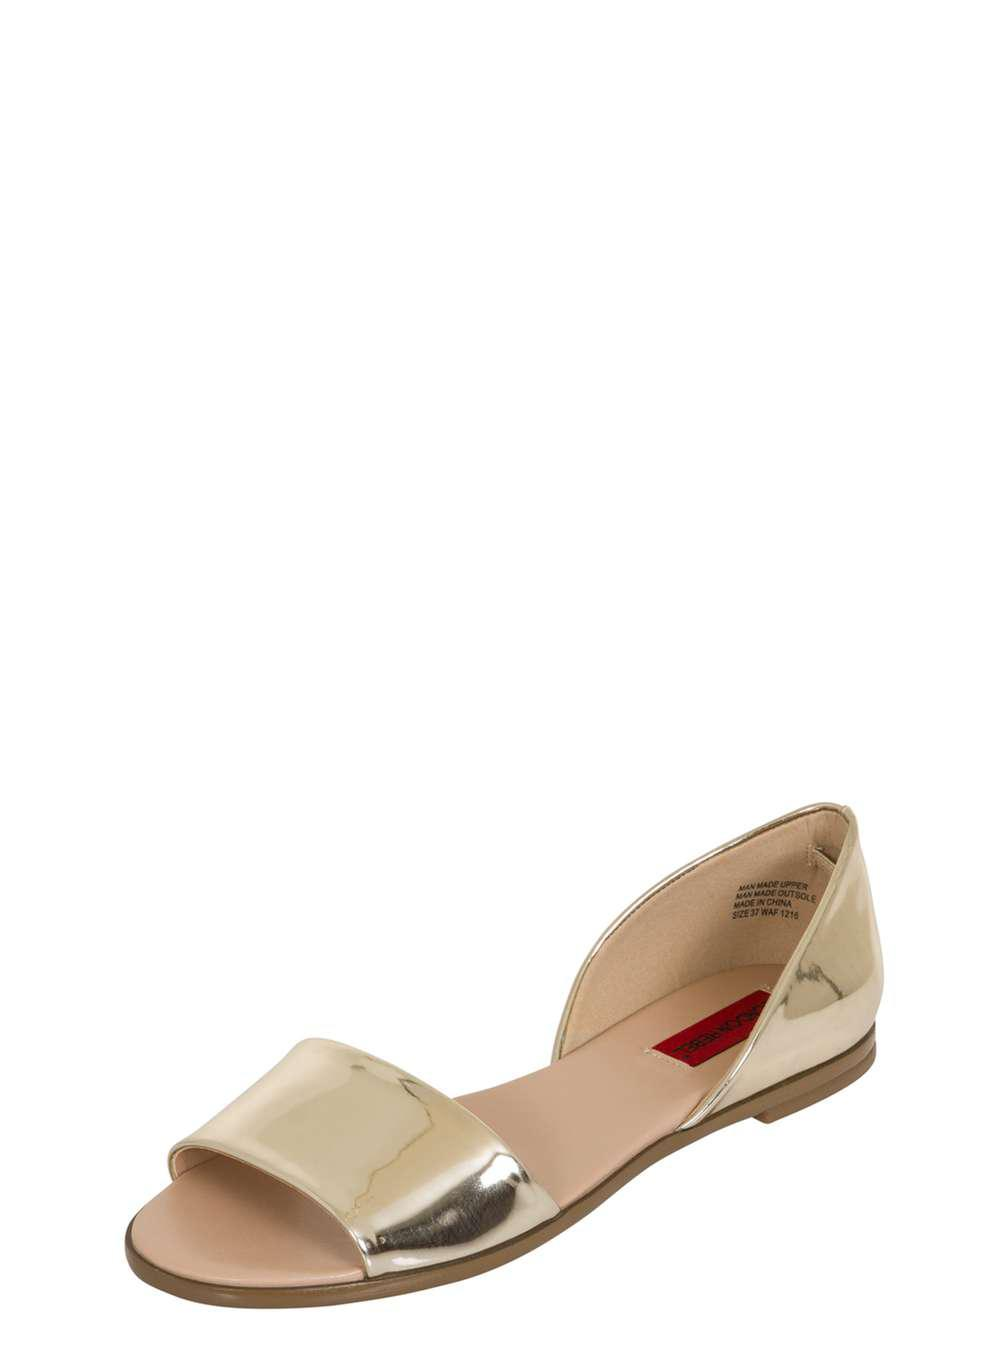 aed156a9f355af Dorothy Perkins - Metallic London Rebel Gold Flat Open Toe Sandals - Lyst